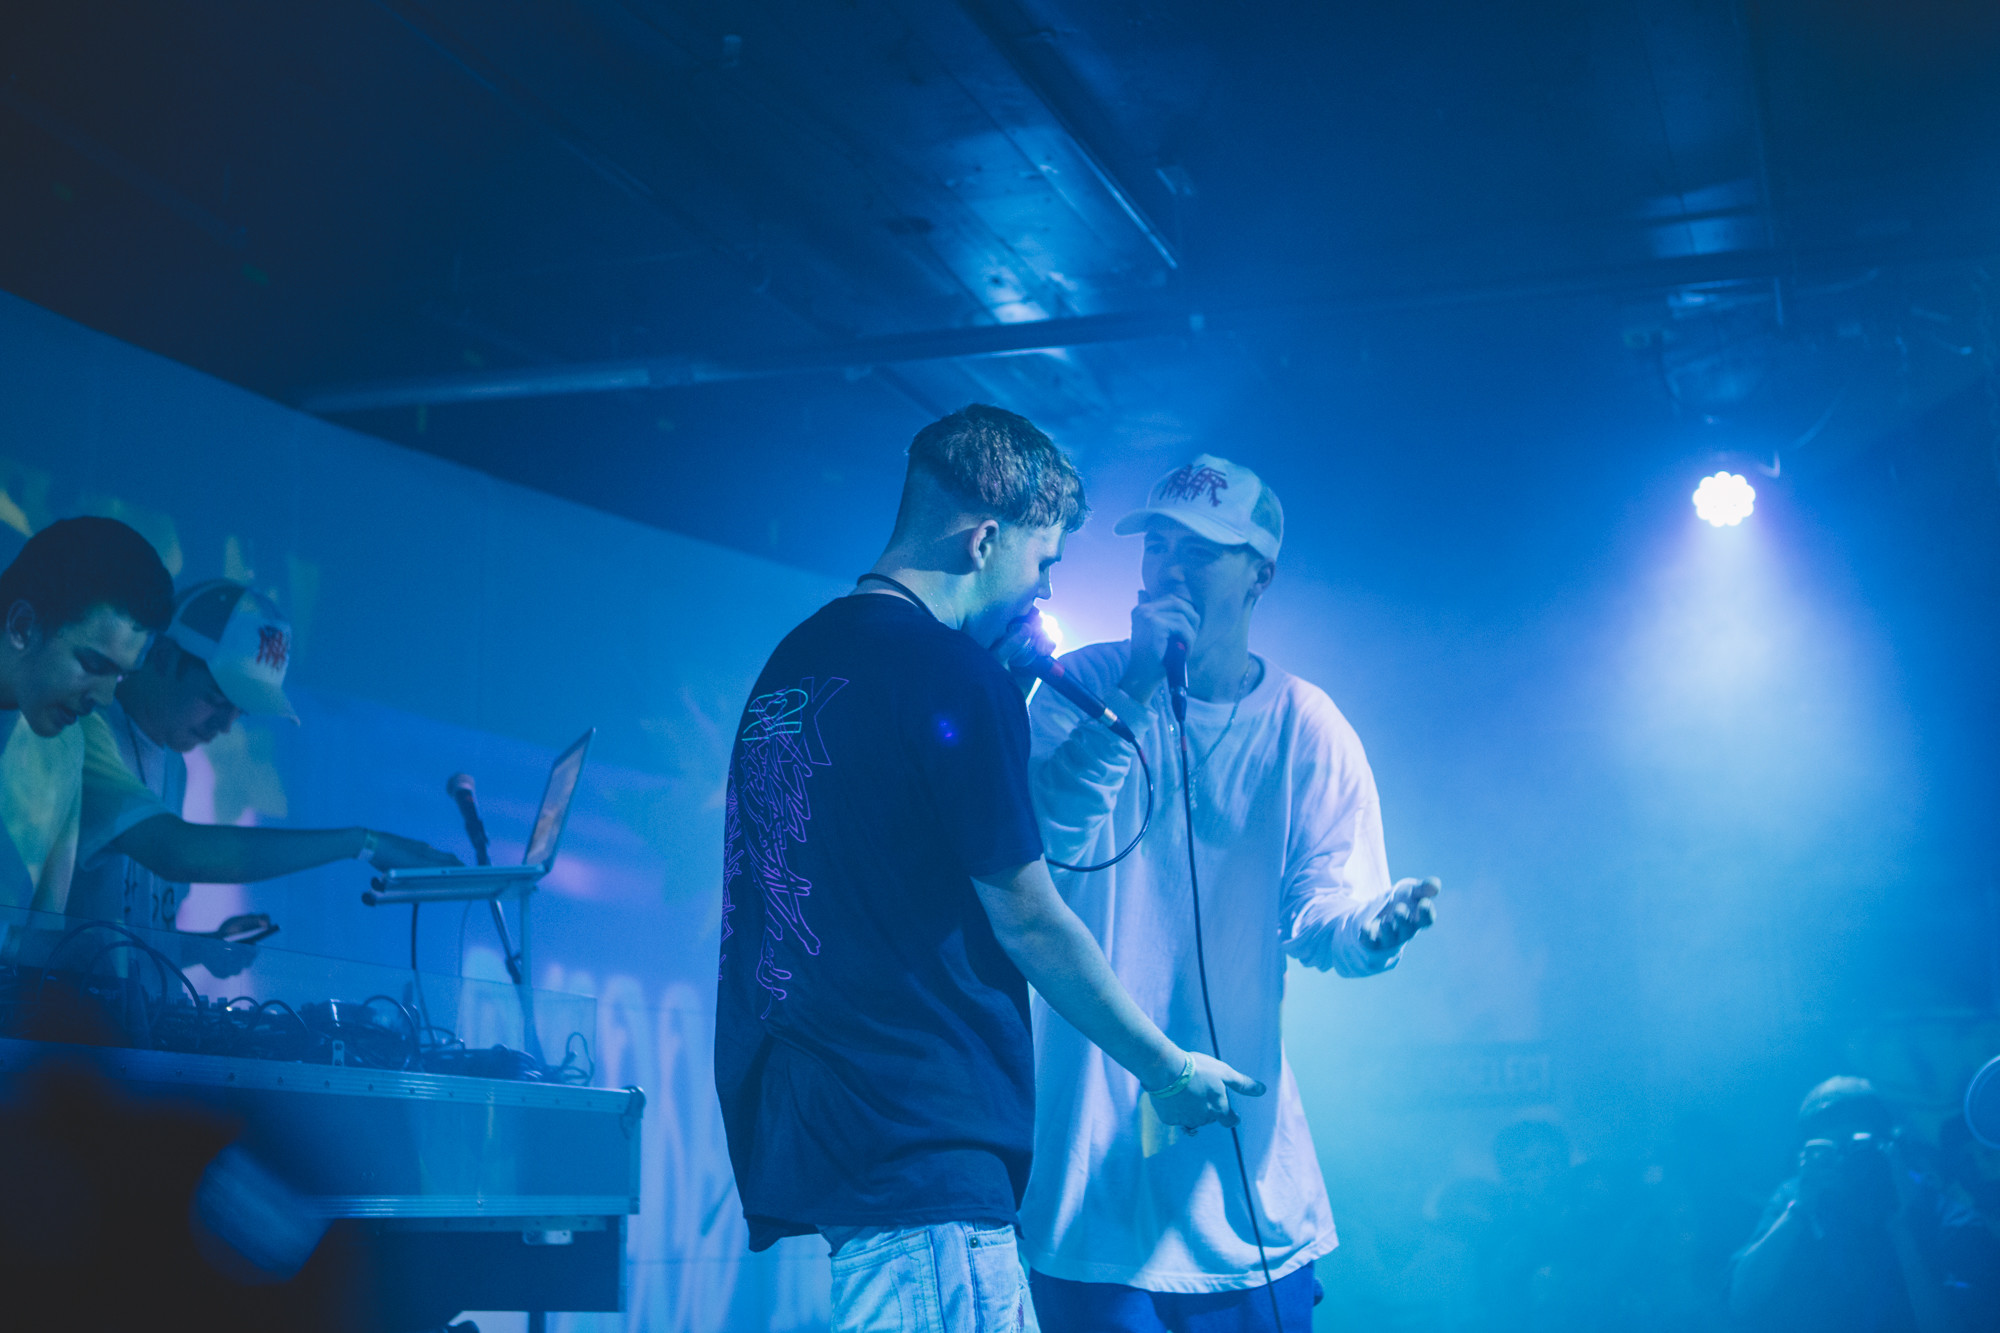 All Yung Lean, RL Grime and Lunice Photos by: Michael Angulo